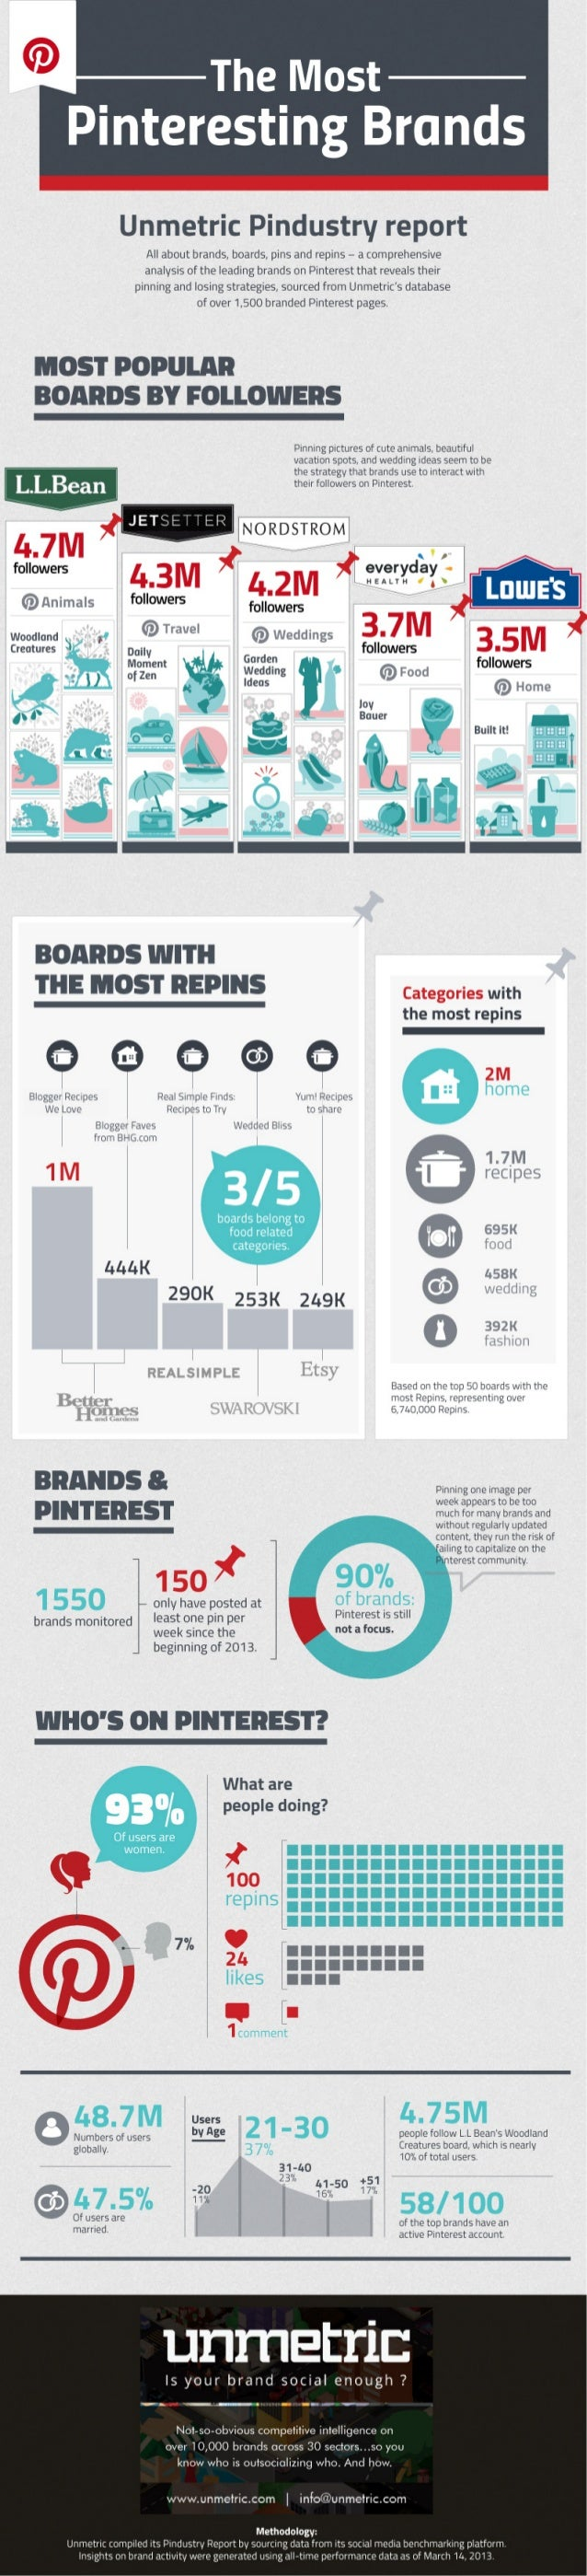 The Most Pinteresting Brands by Unmetric